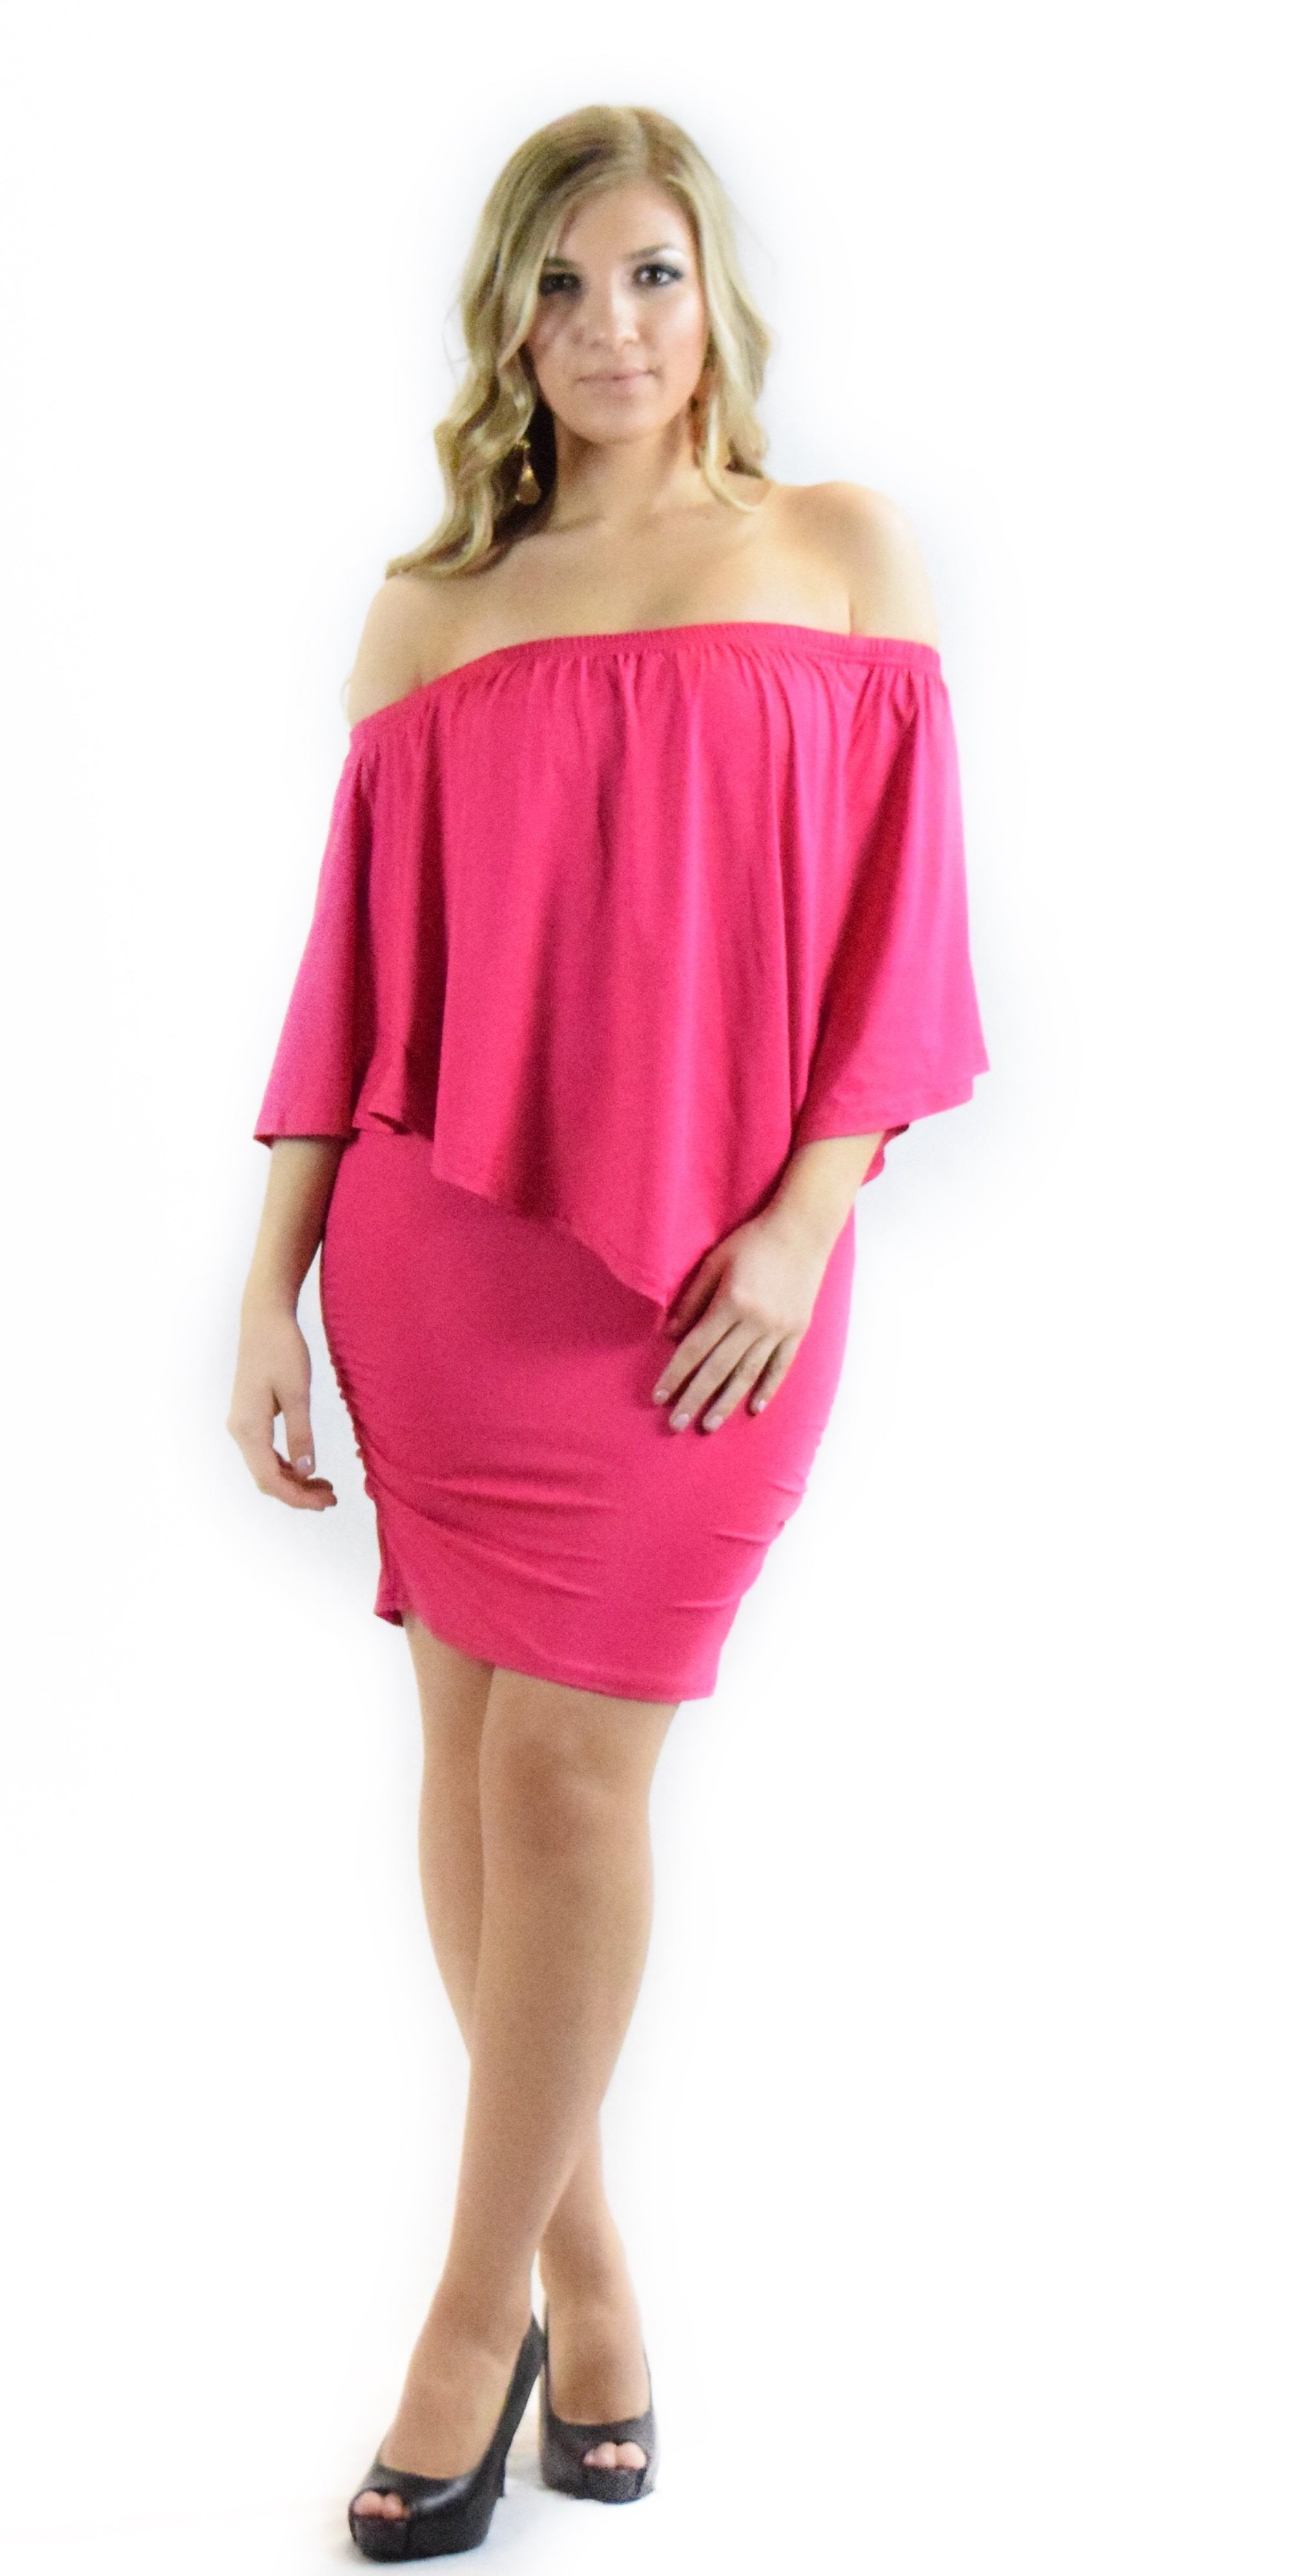 magenta off shoulder dress pink one comfortable fashion clothing woman trending style